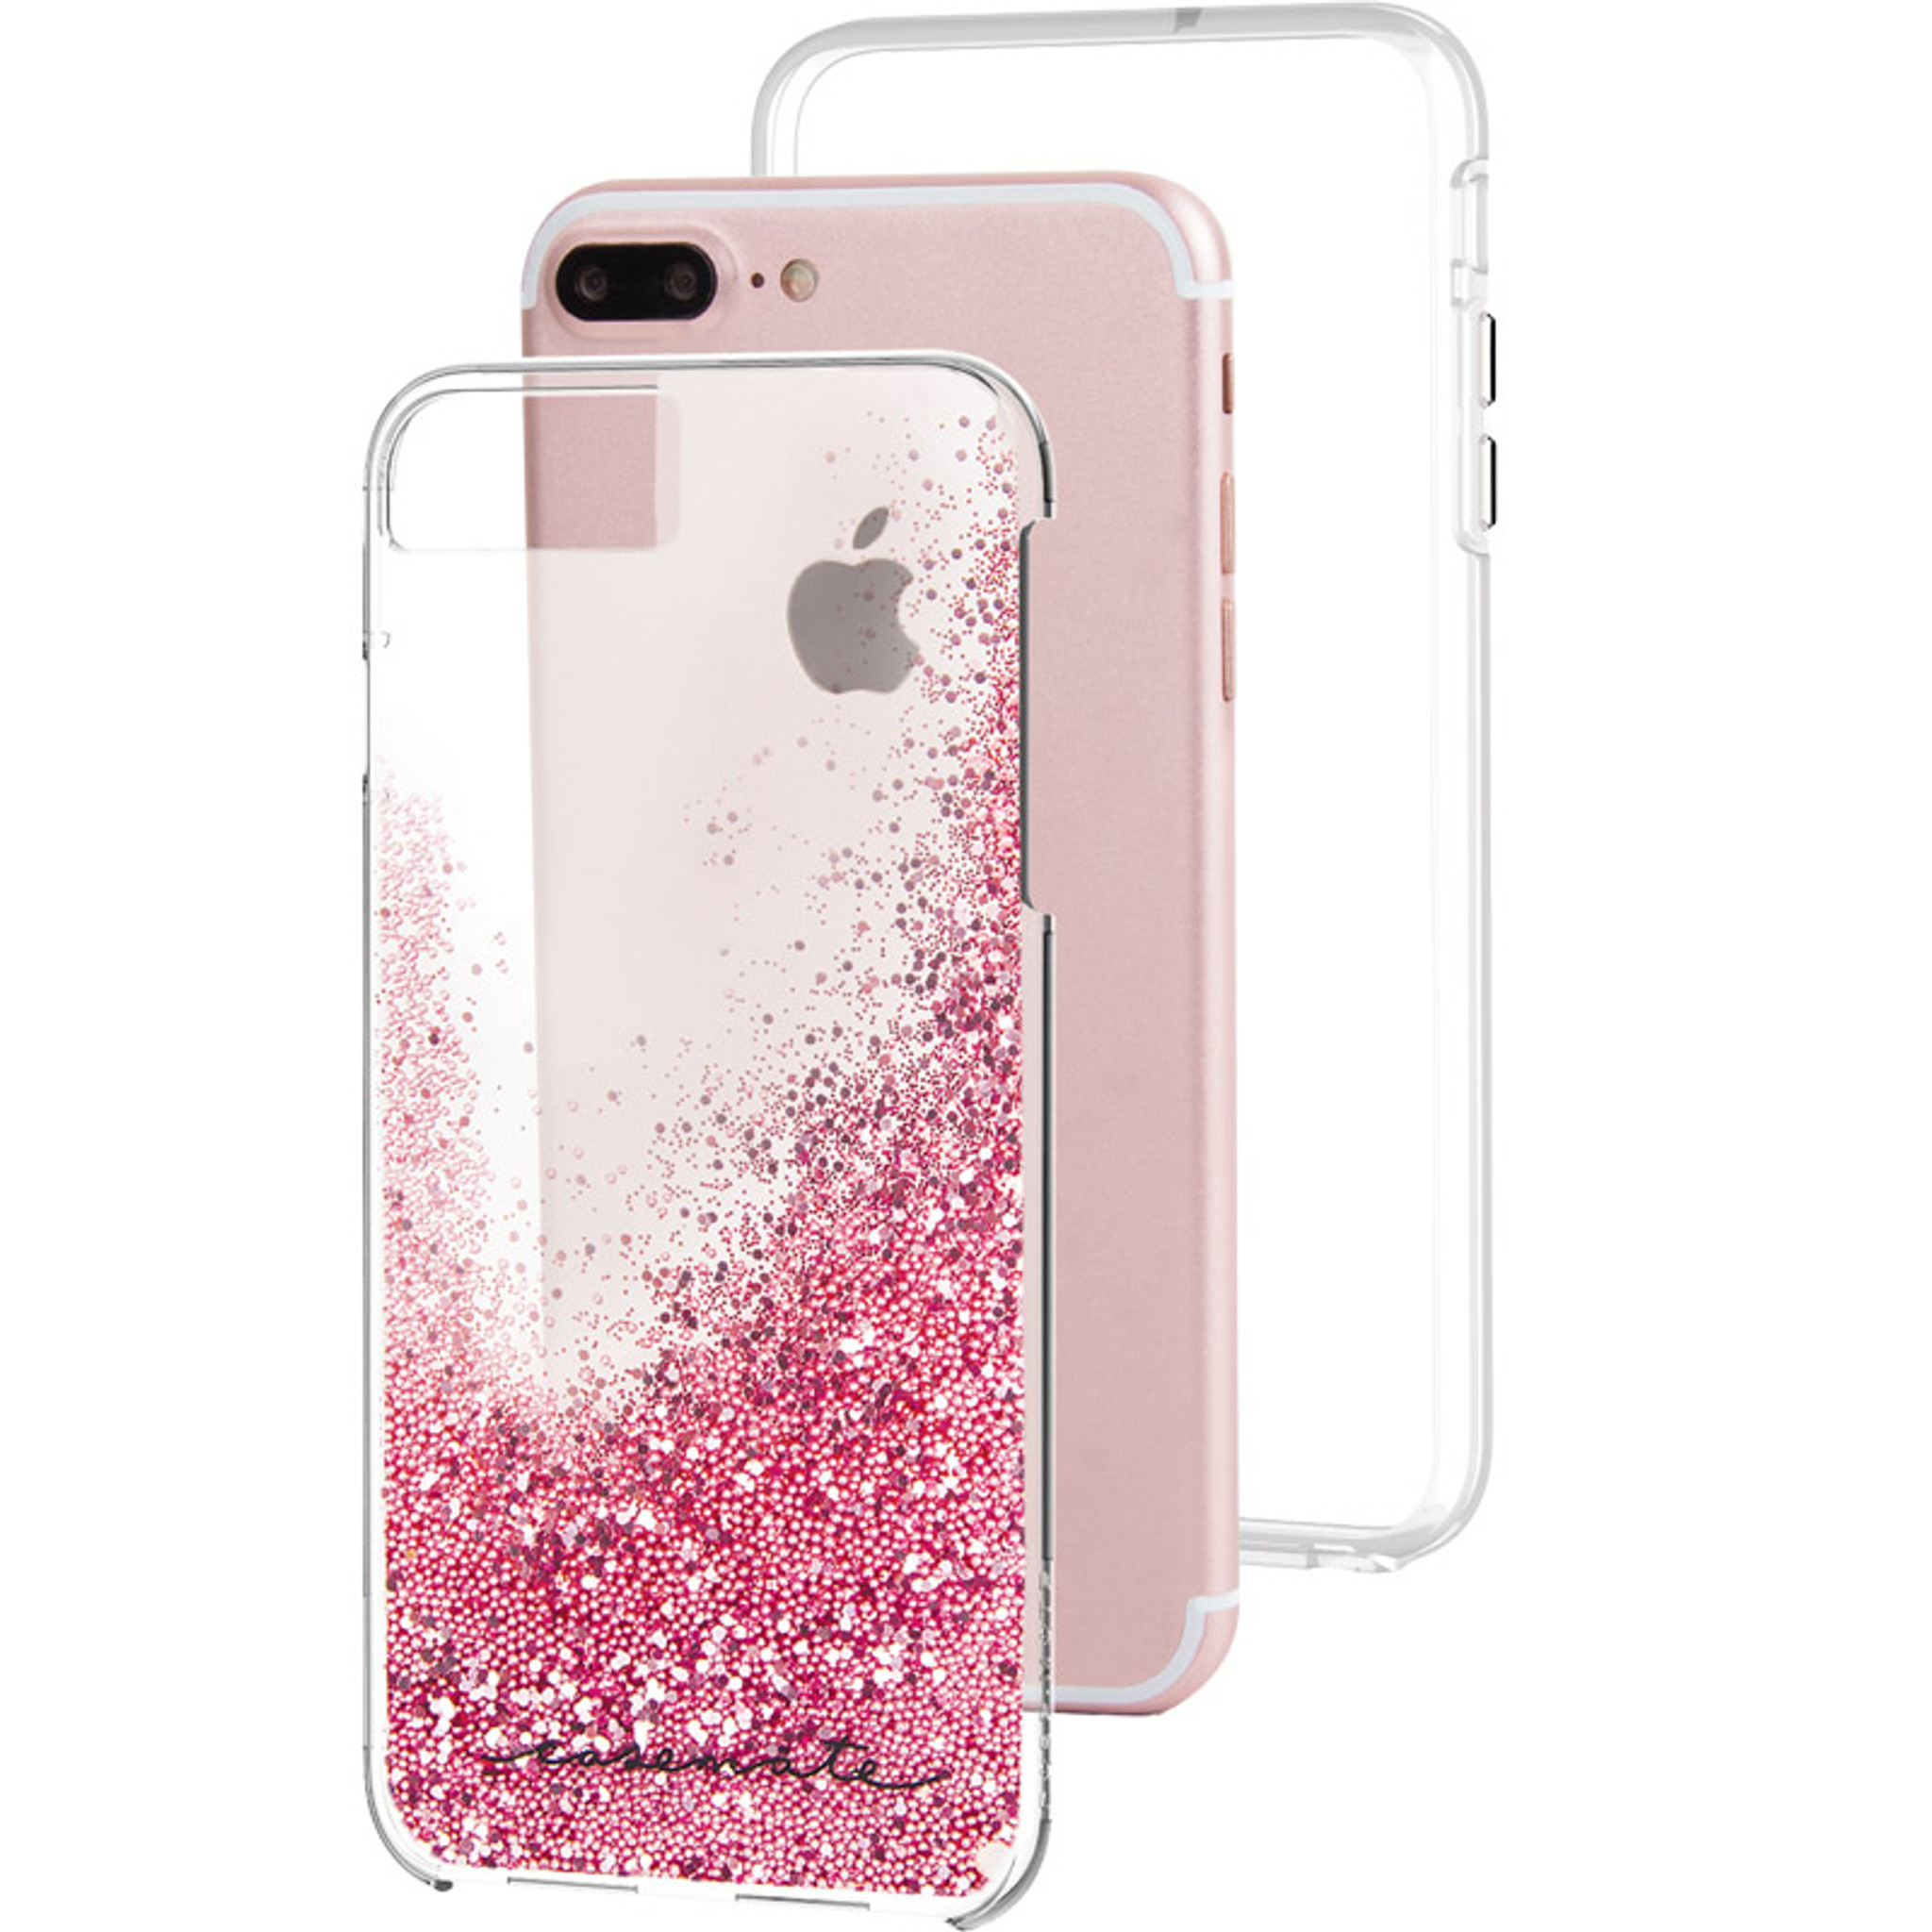 Waterfall Case Cover iPhone 7 6s 6